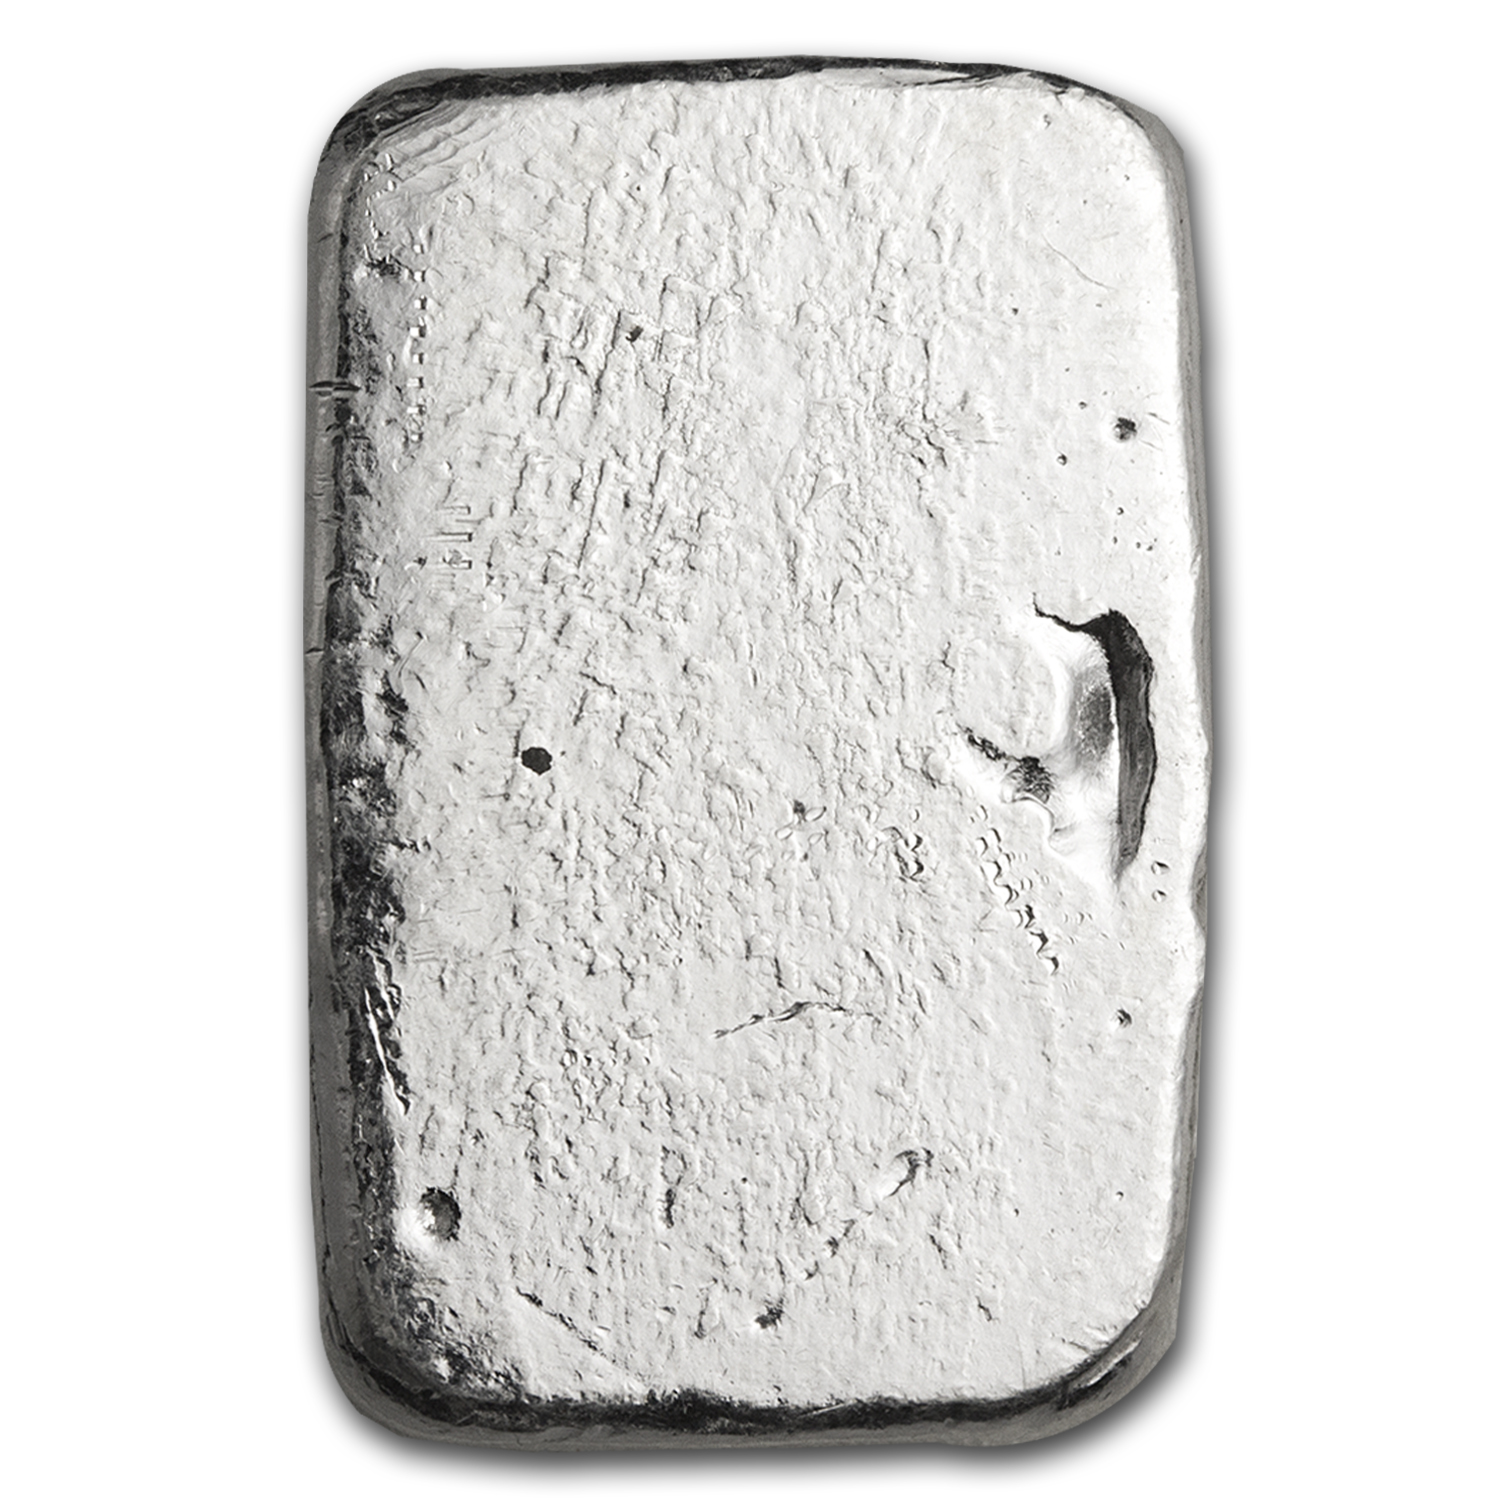 1 oz Silver Bar - Atlantis Mint (Skull & Bones)